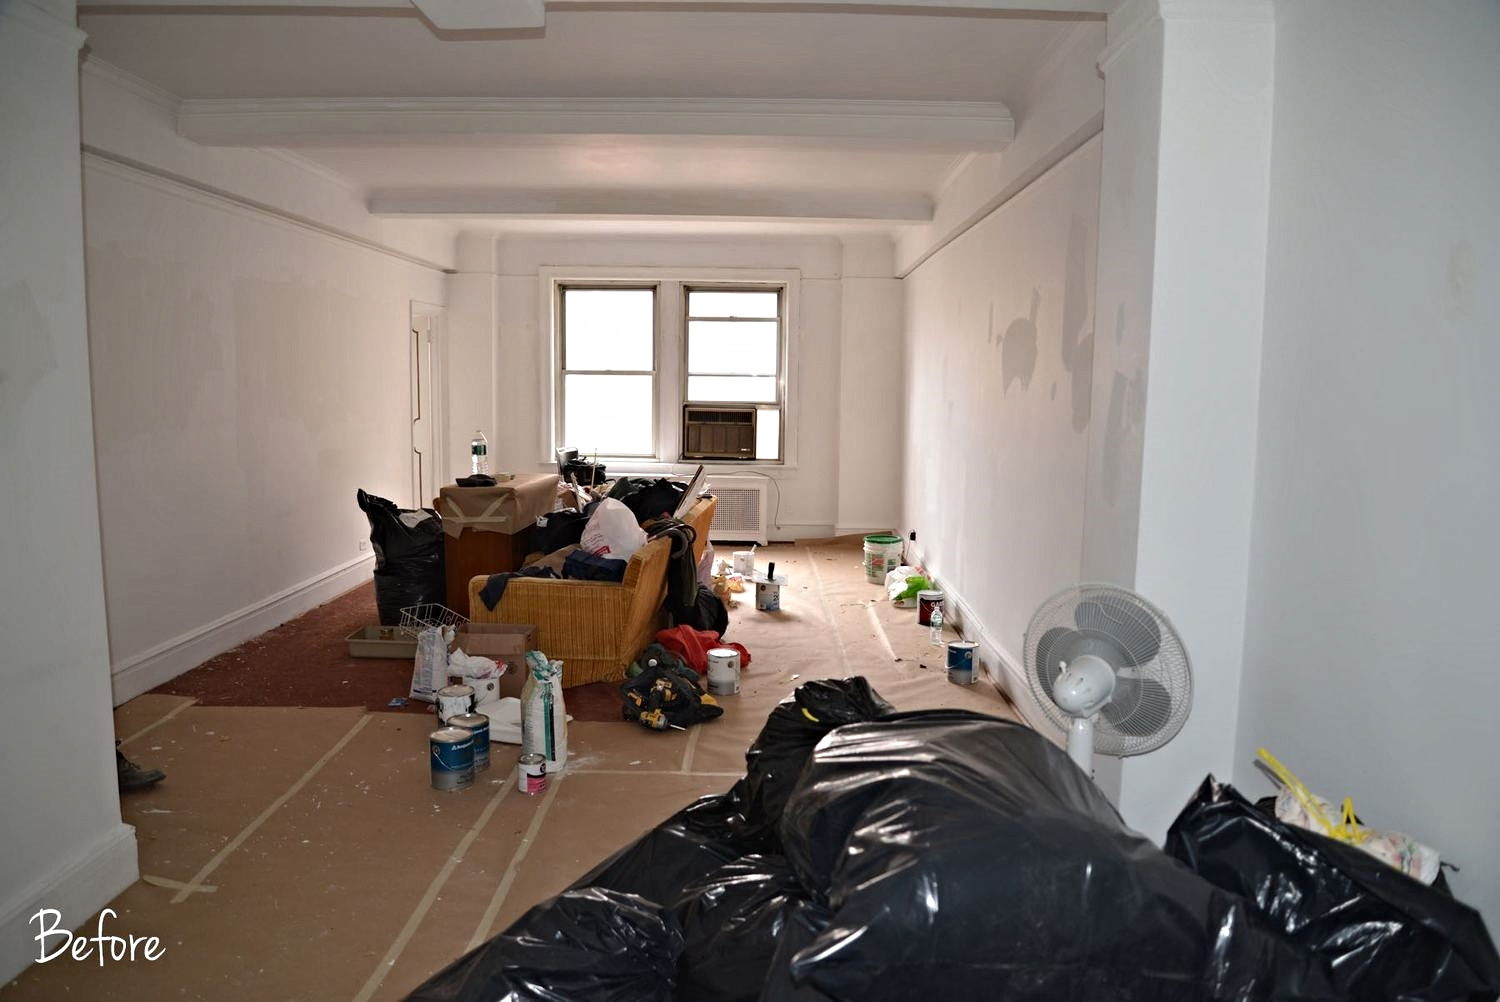 Before shot.  The living room when staging began.